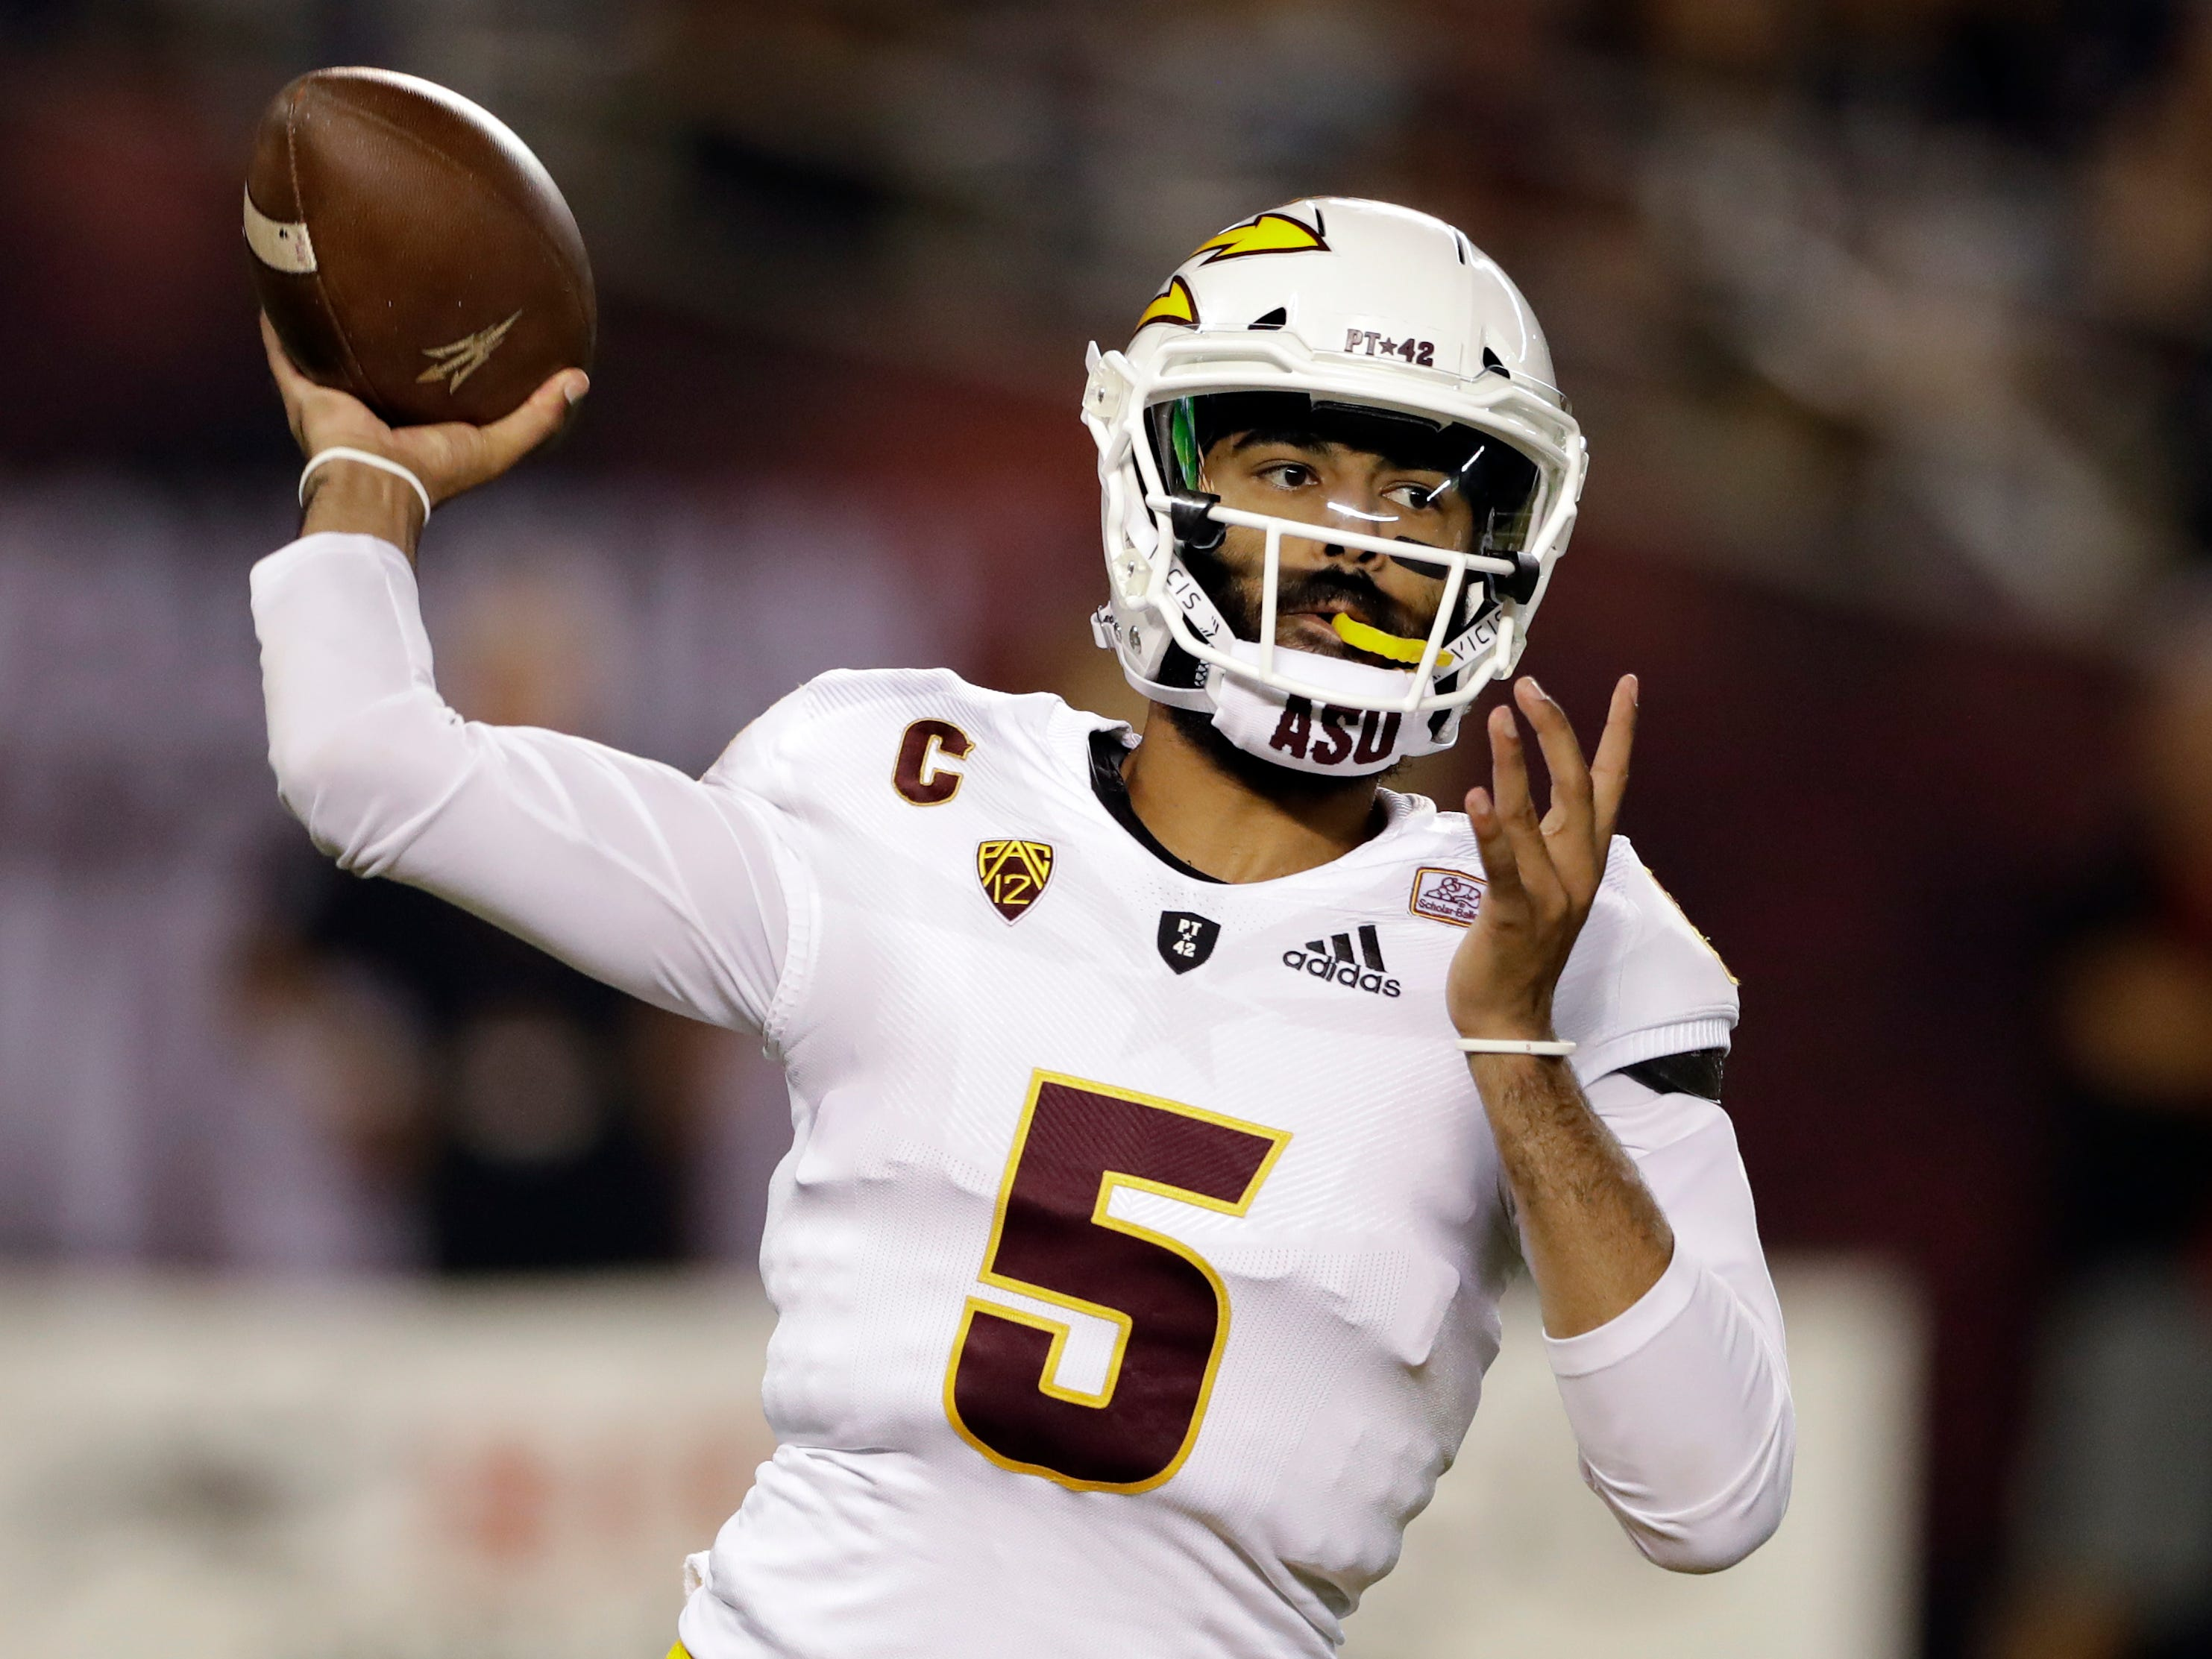 Arizona State quarterback Manny Wilkins throws a pass during the first half of an NCAA college football game against San Diego State, Saturday, Sept. 15, 2018, in San Diego. (AP Photo/Gregory Bull)